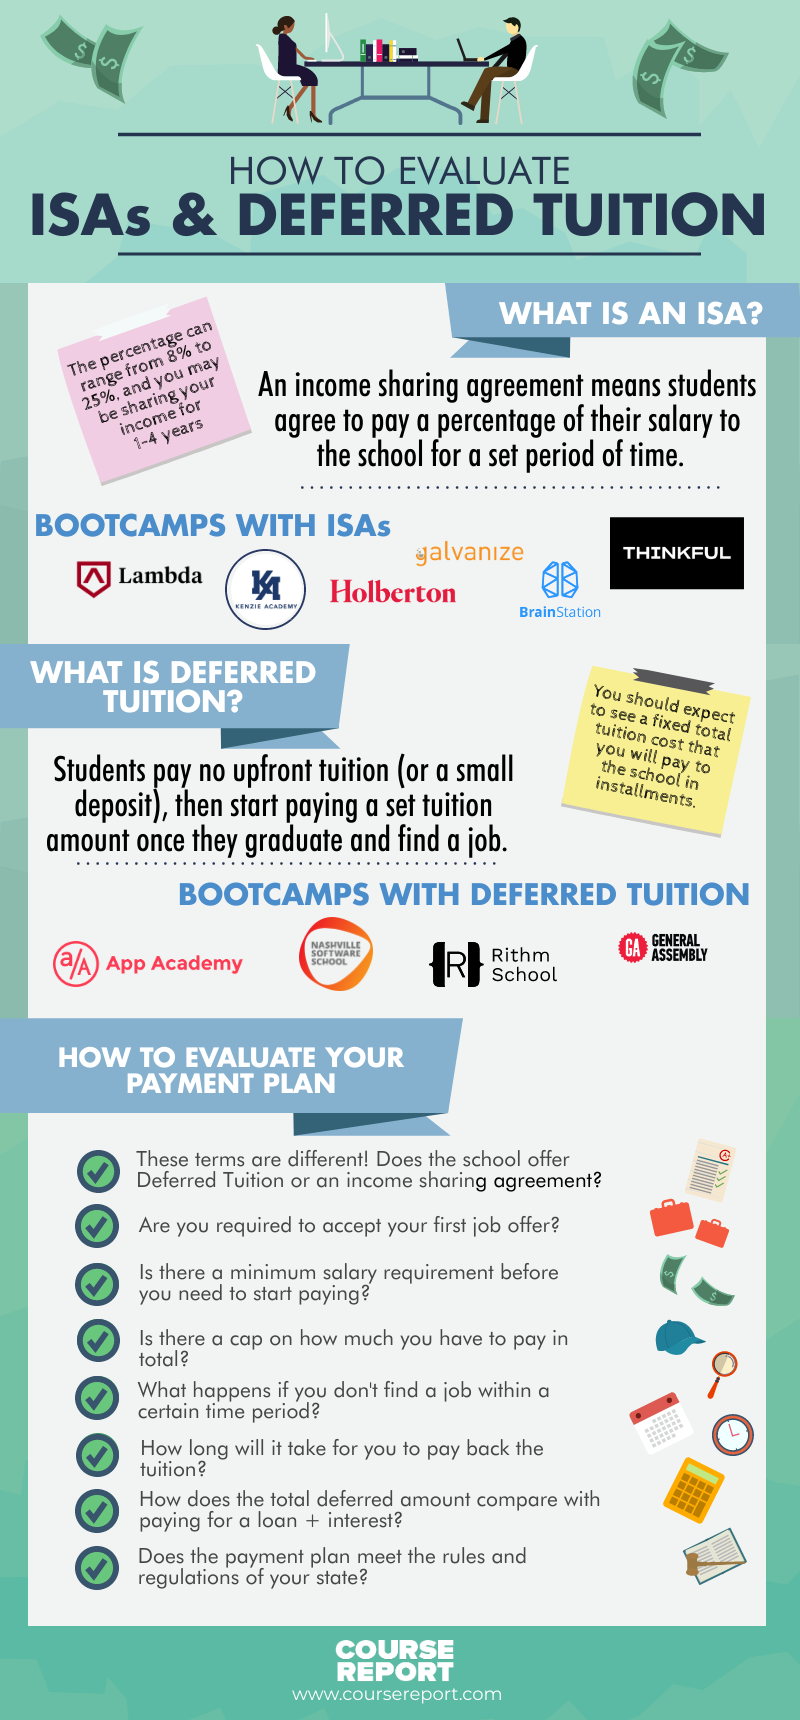 income sharing agreements coding bootcamps 2020 infographic